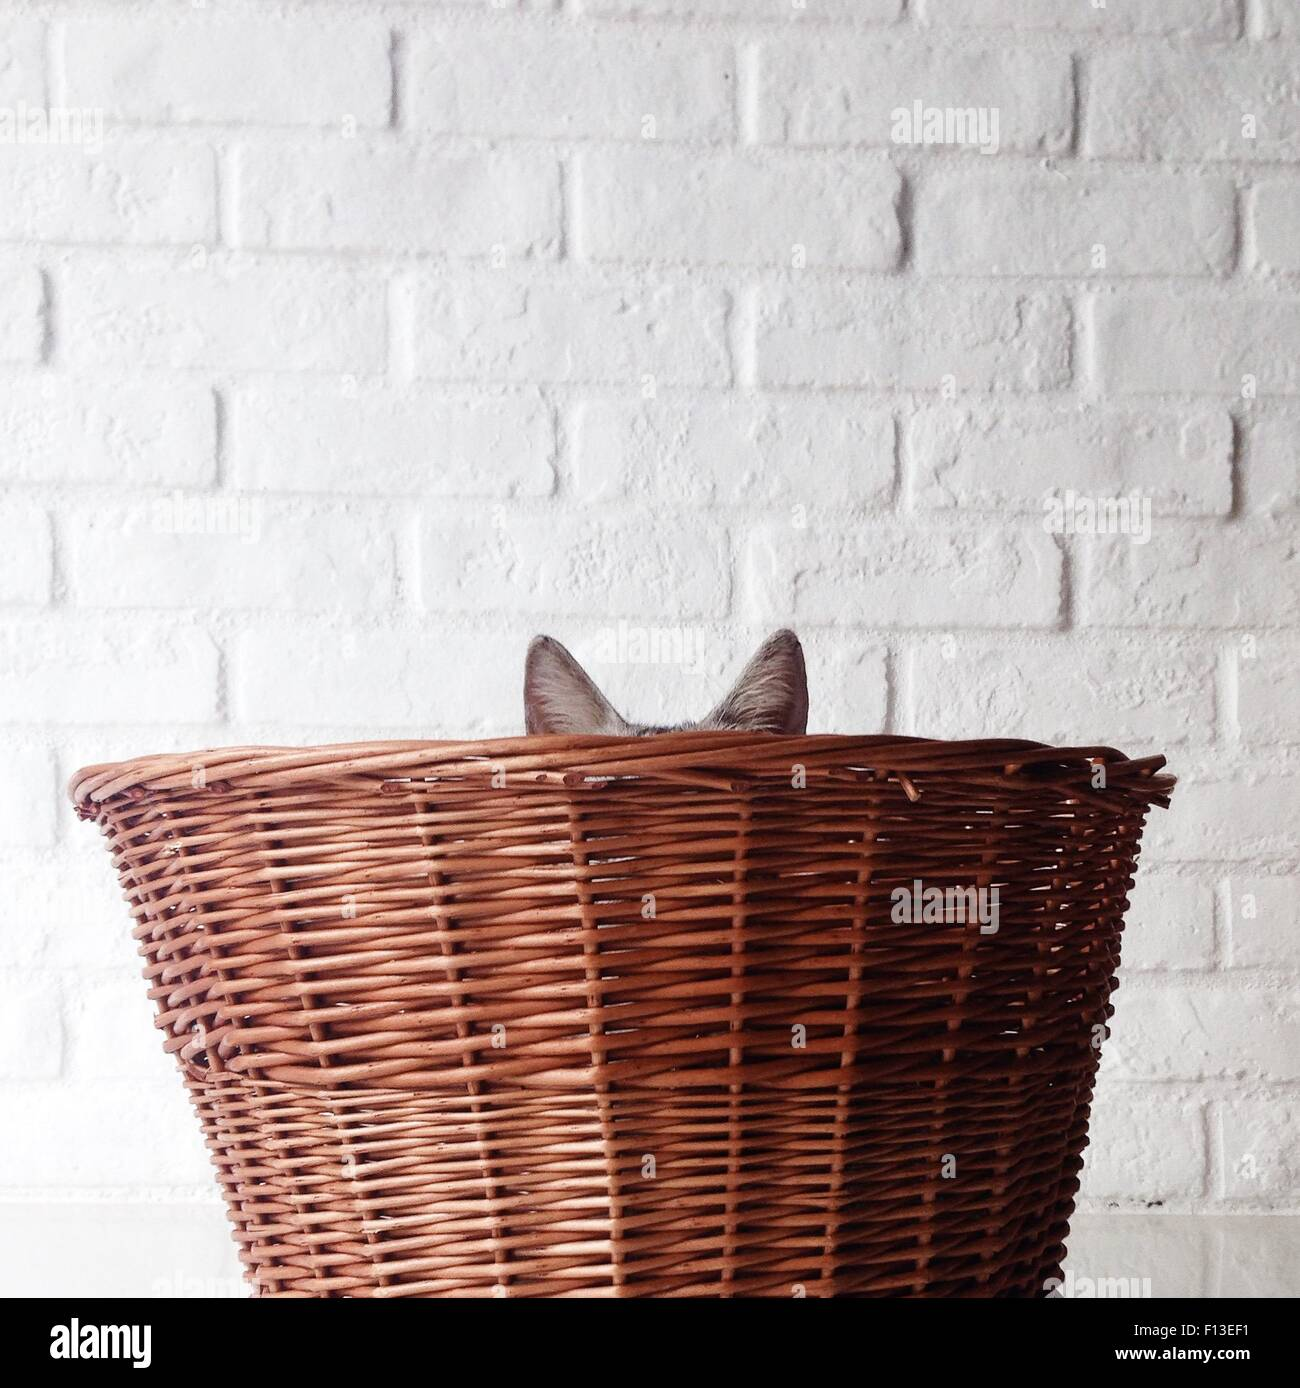 Cat hiding in a Basket Stock Photo